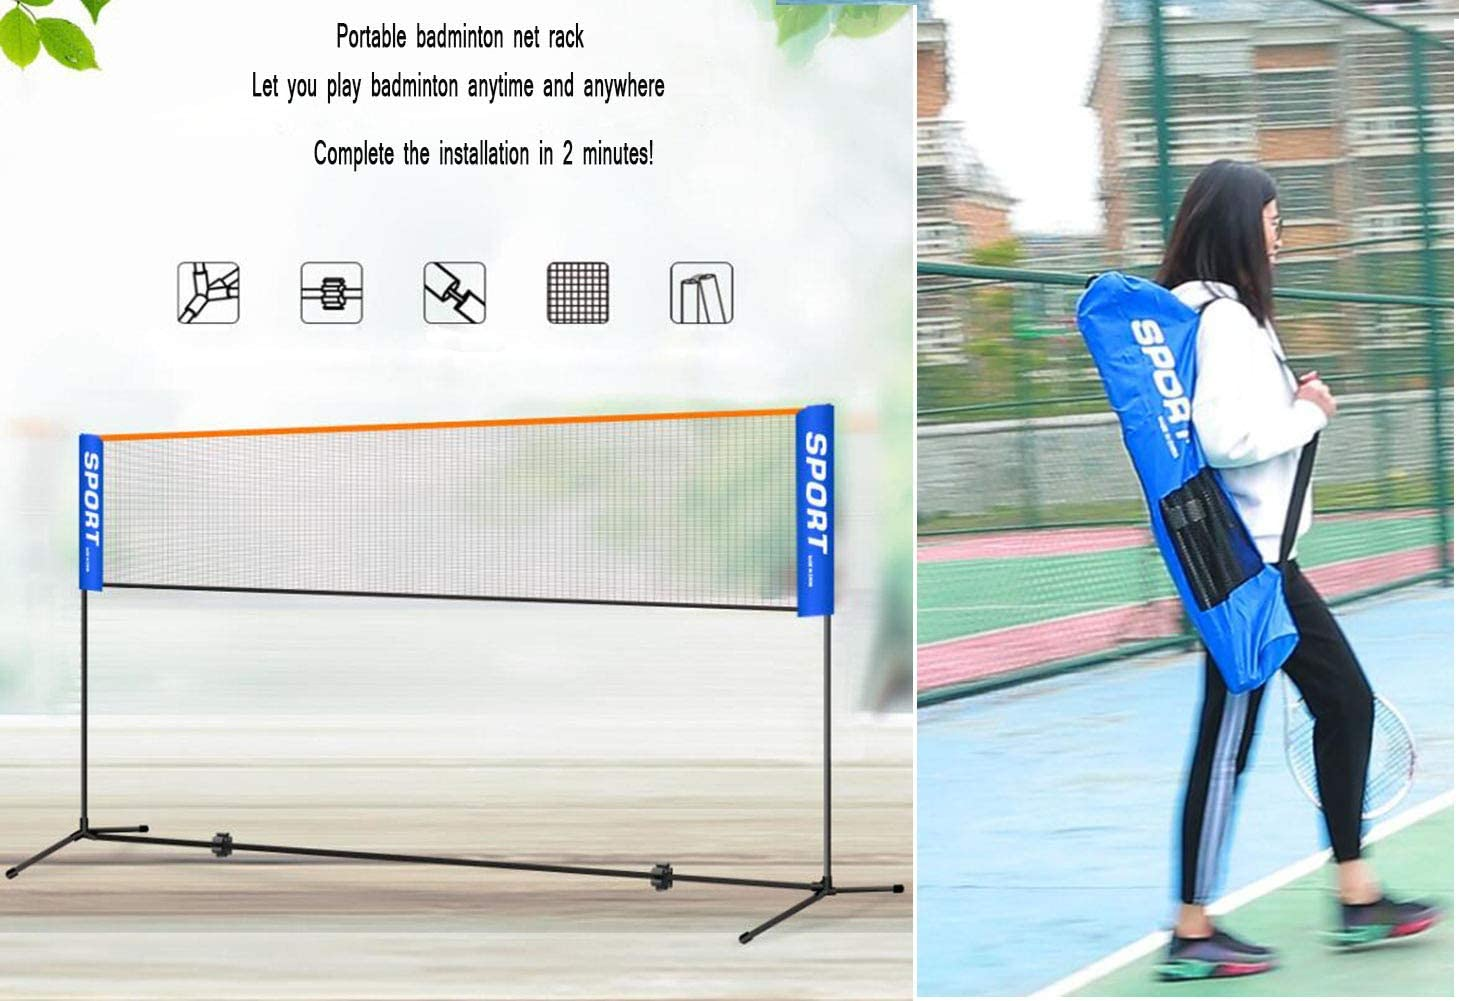 free-standing leisure net for badminton width 3m street tennis and other sports continuously height-adjustable from 0.75m to 1.55m CHUANGXIE Tennis net//net set combi